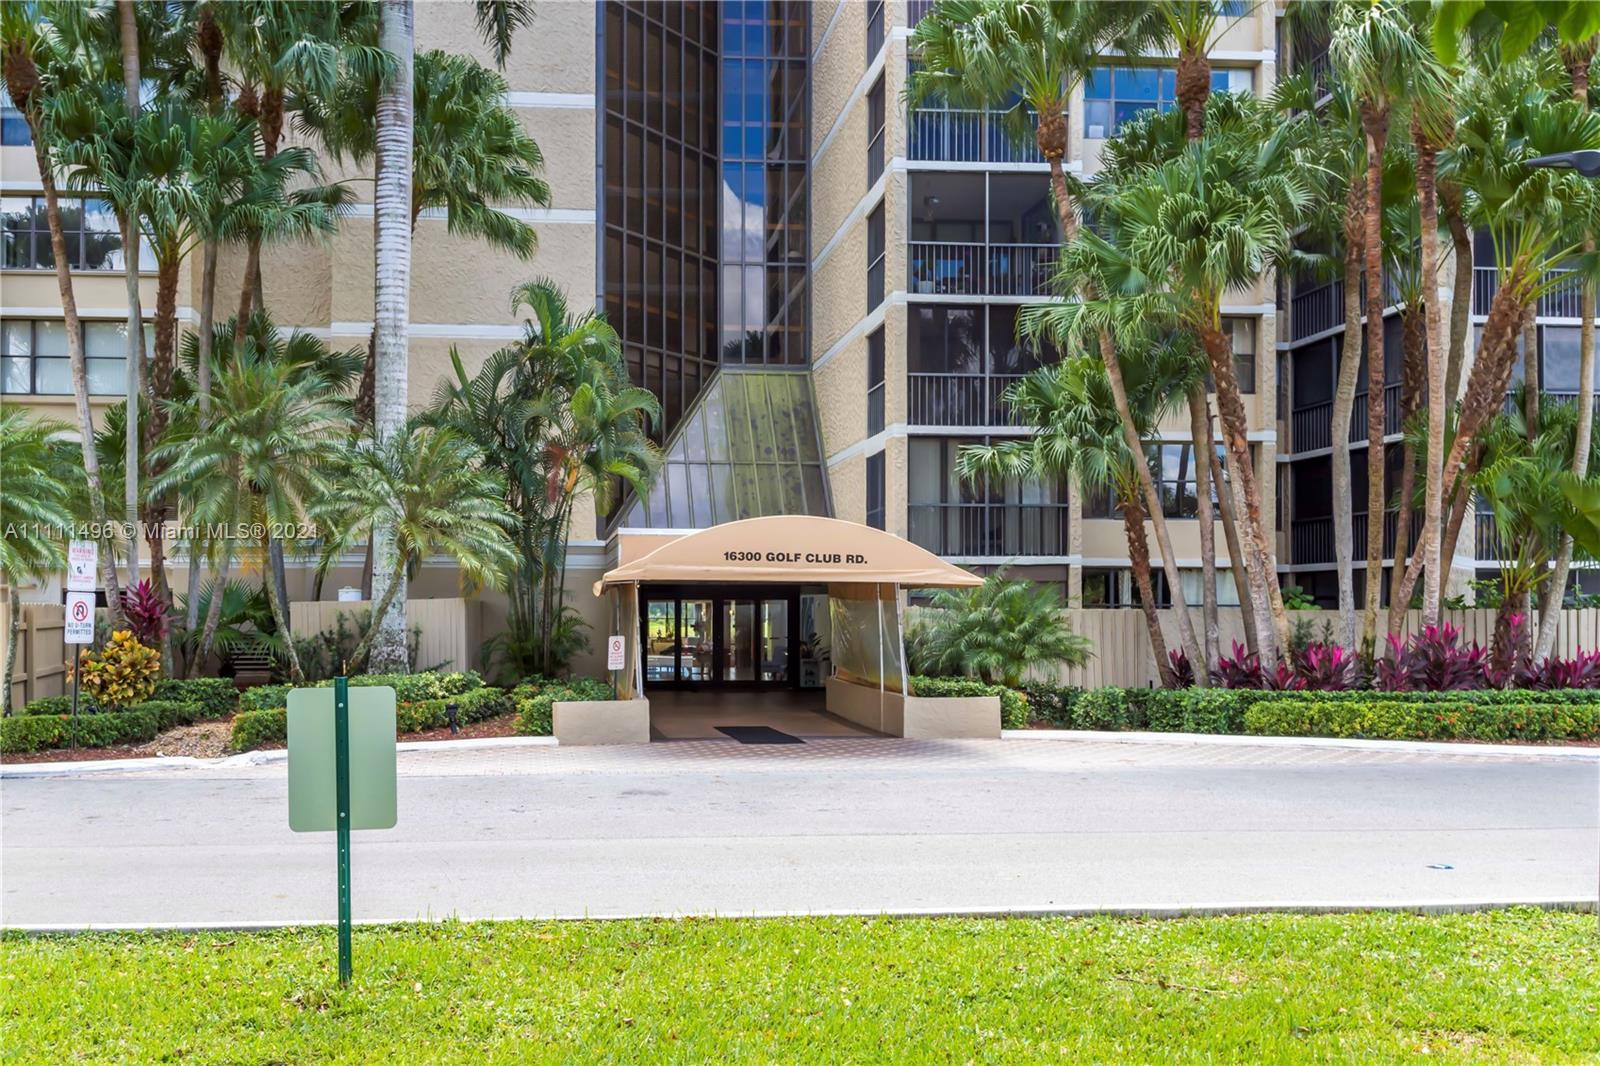 Location, Location, Location!!! Beautiful condo unit in nice residential area located in desirable Country Club Village. Spacious 2/2.5 is move in ready. Resort style community with pool, tennis, basketball, racquetball, billiards room, gym etc. All ages are welcome.